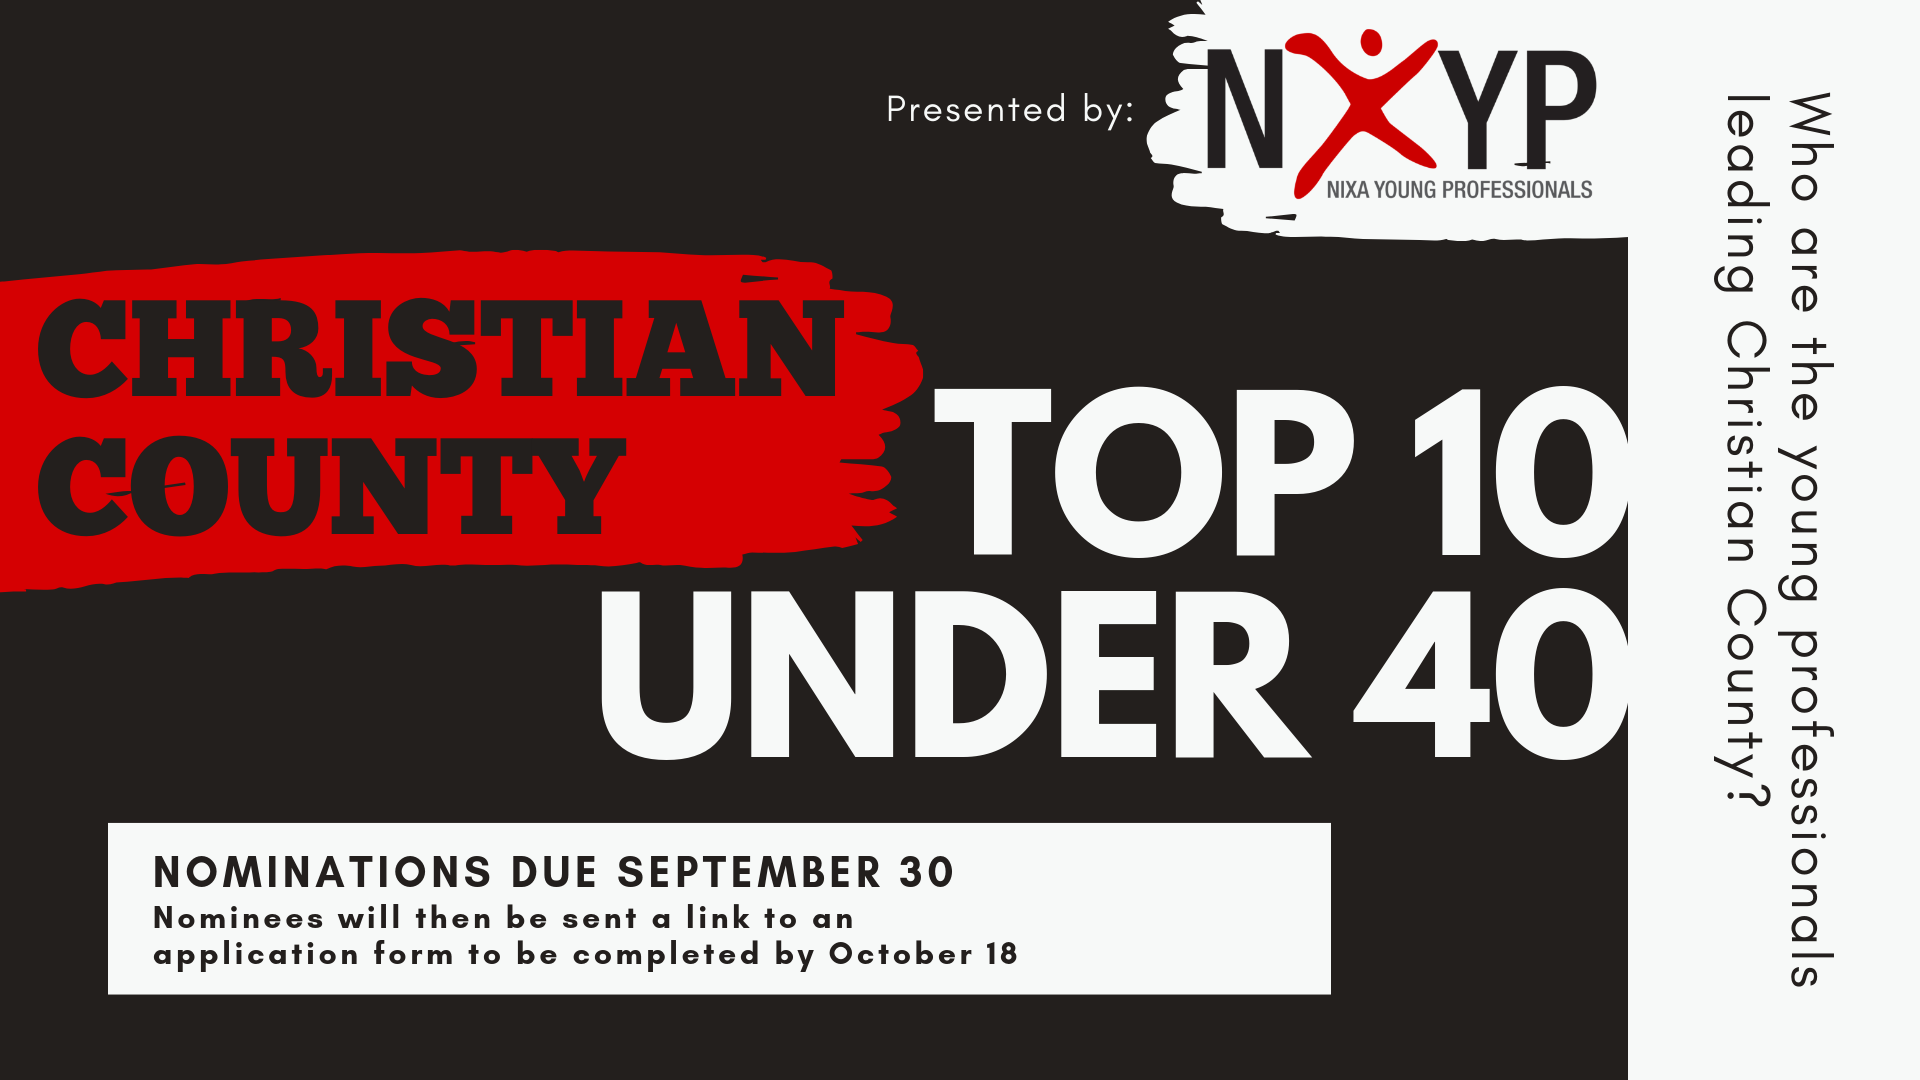 Christian County Top 10 Under 40